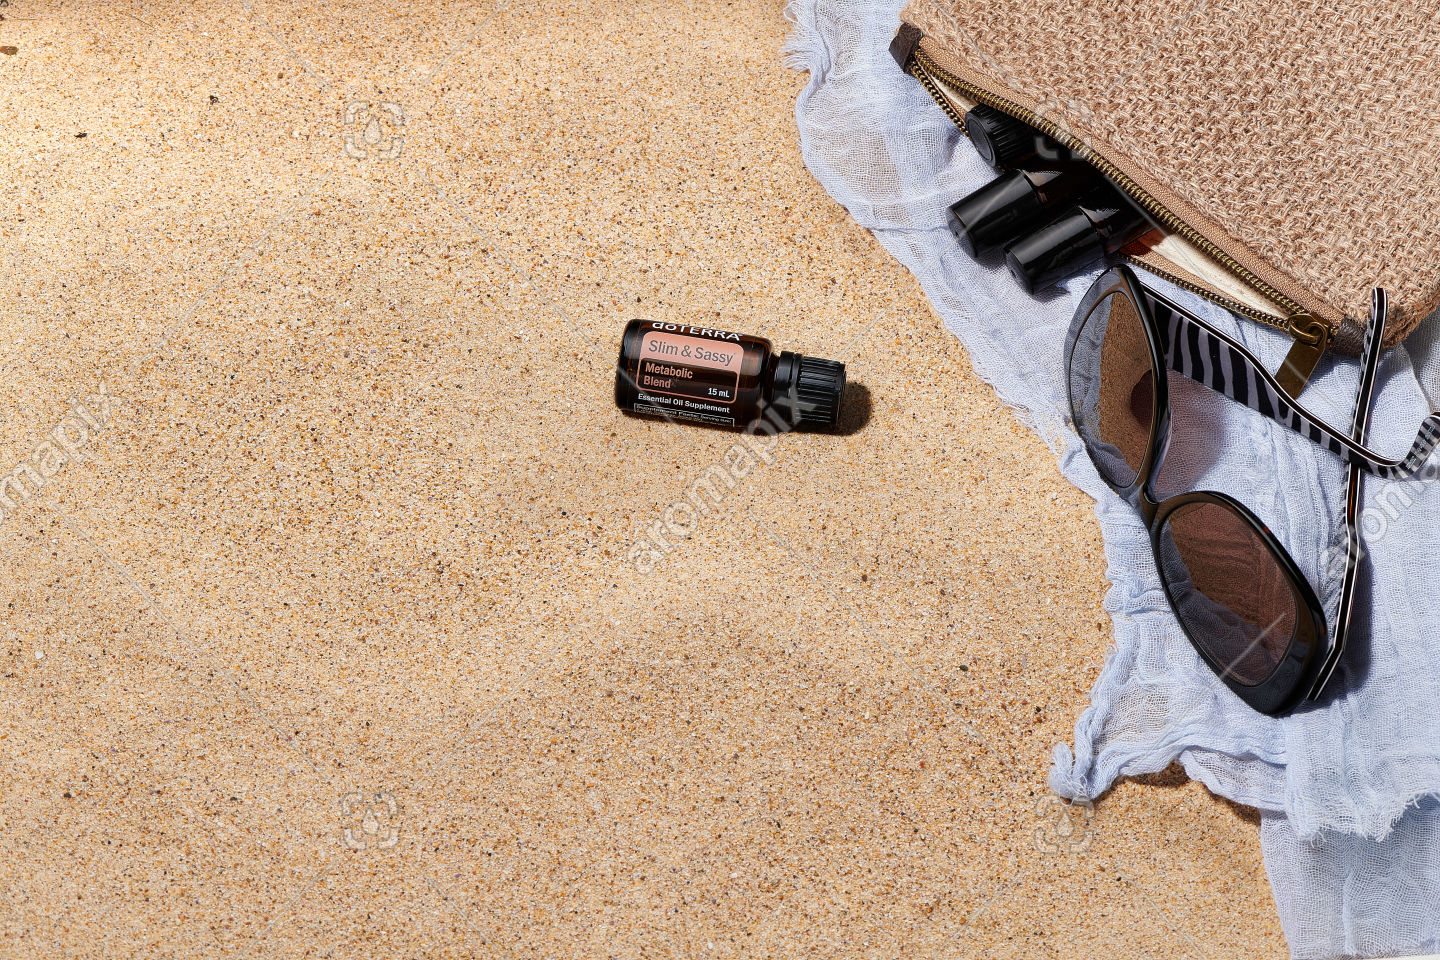 doTERRA Slim and Sassy with accessories on sand